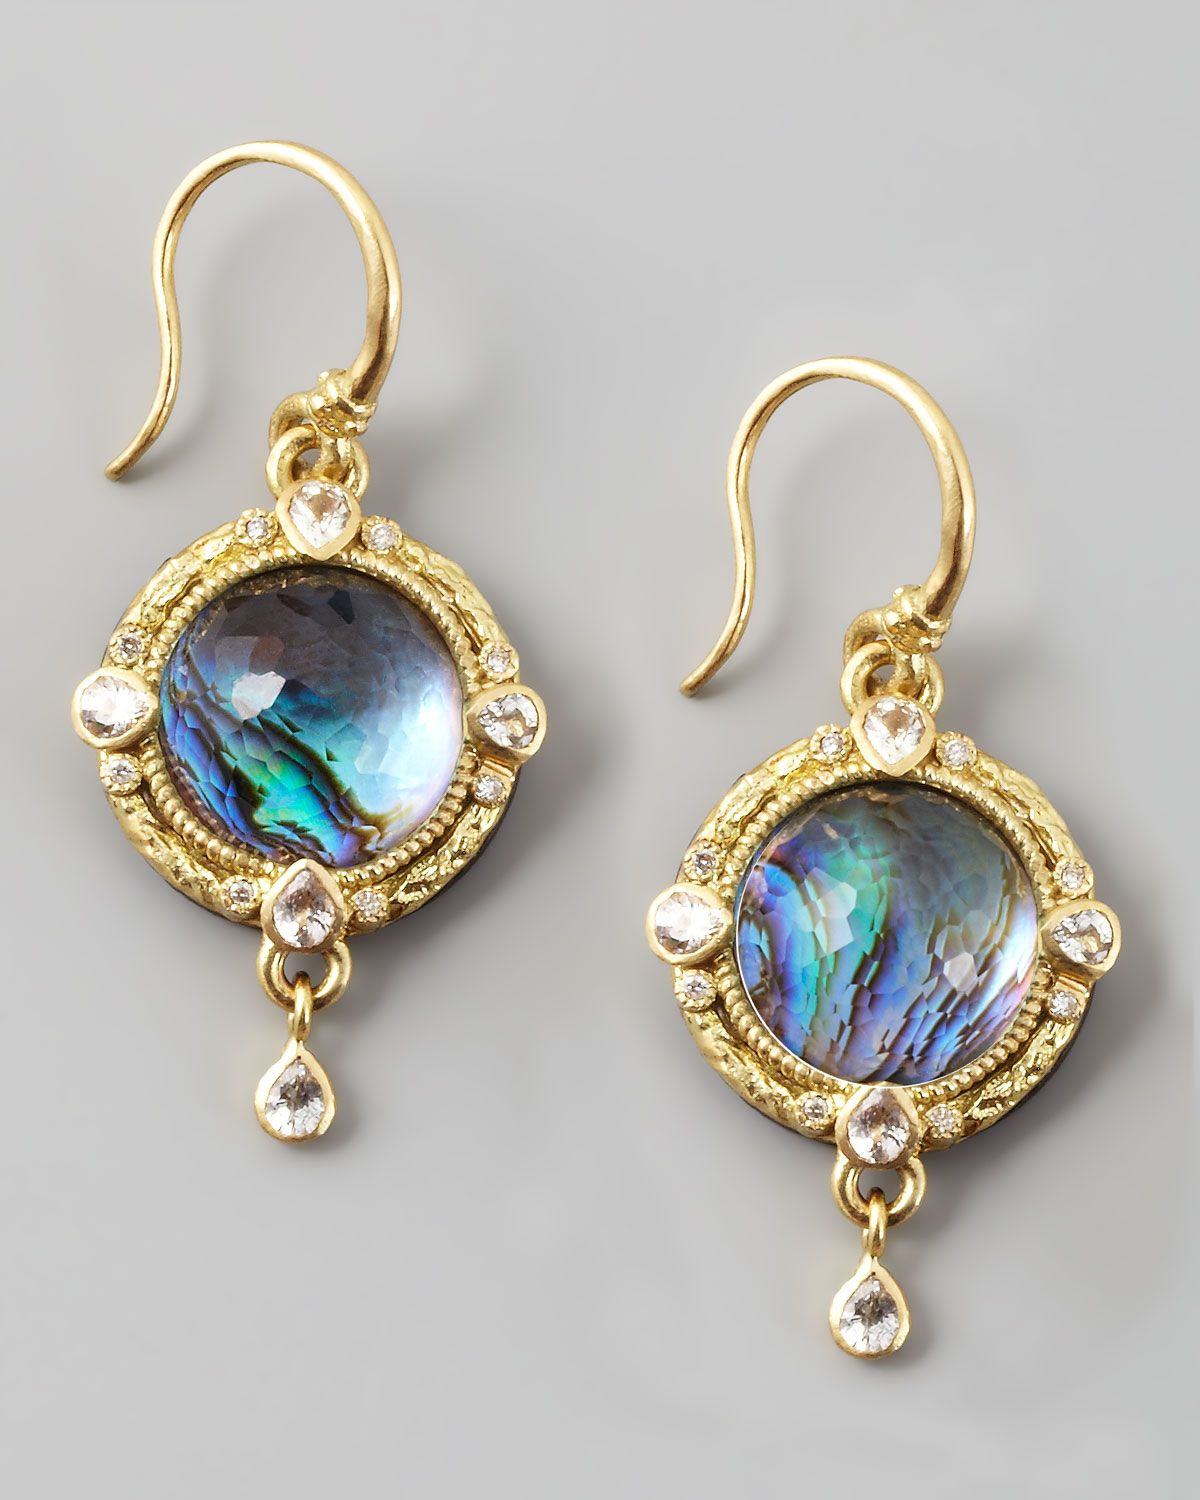 15 Examples Of Beautiful Earrings For Girls | Round earrings ...